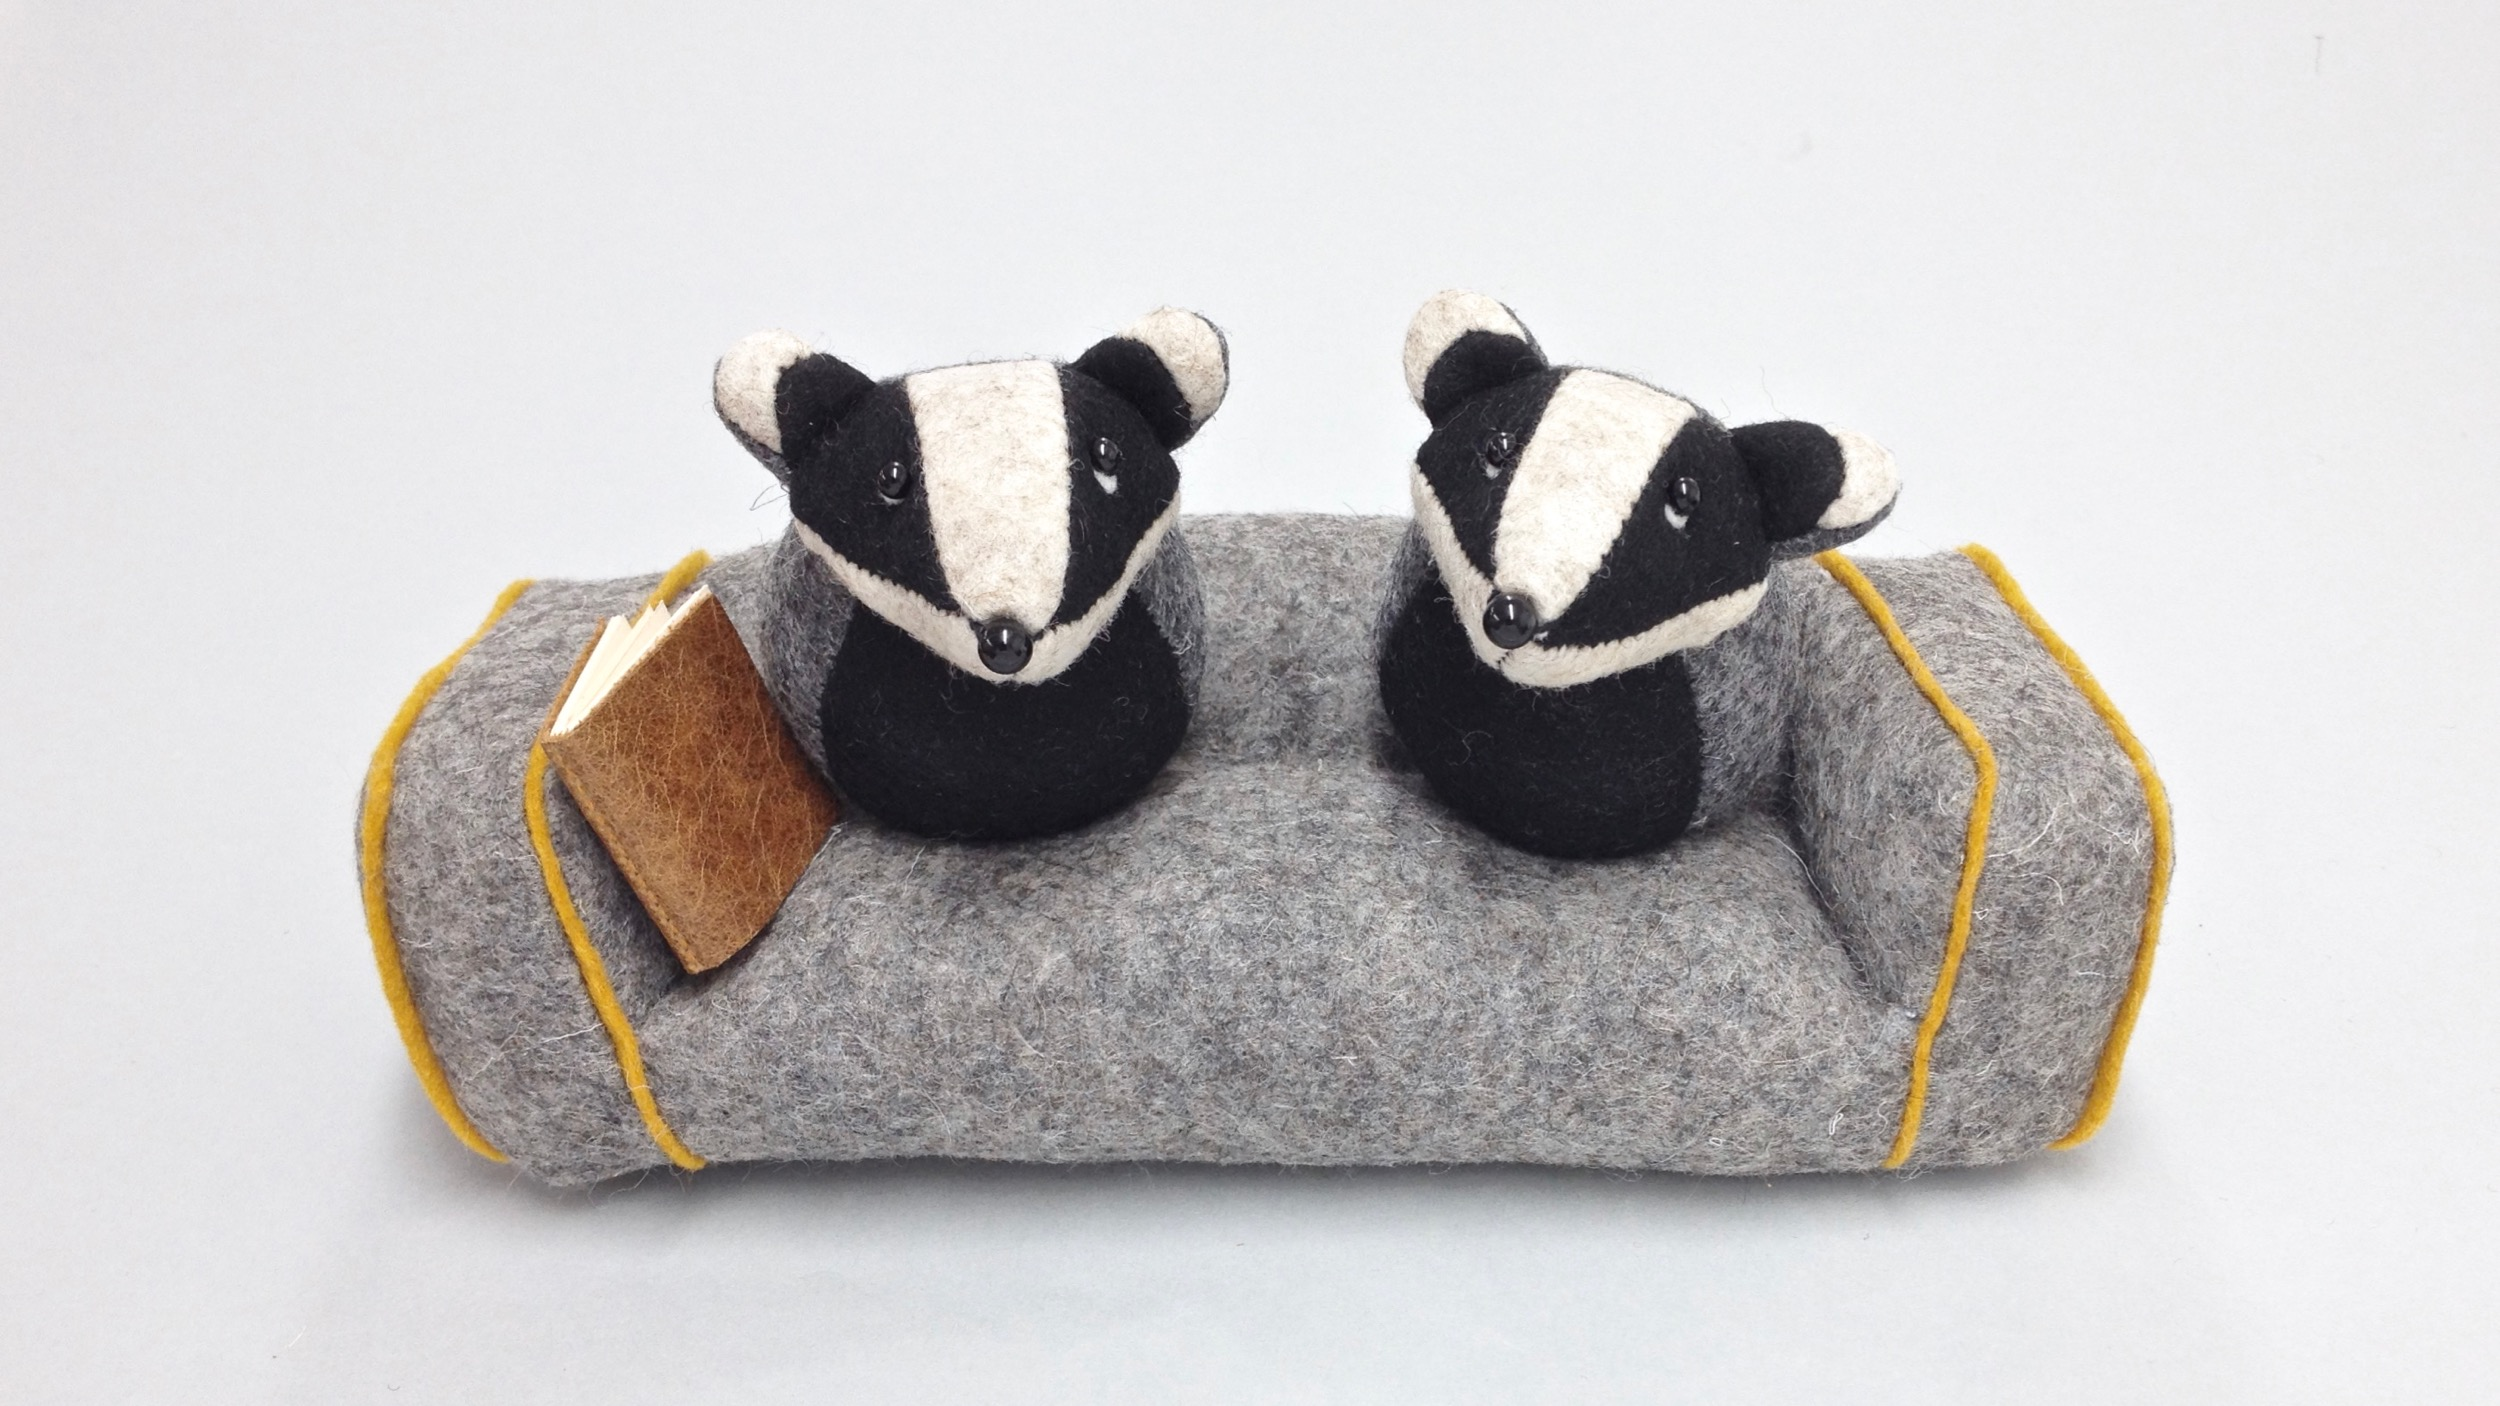 Bilberry Woods storybook character Bernard the Badger and his wife Mrs Higgins handmade from wool felt by Laura Mirjami | Mirjami Design.jpg